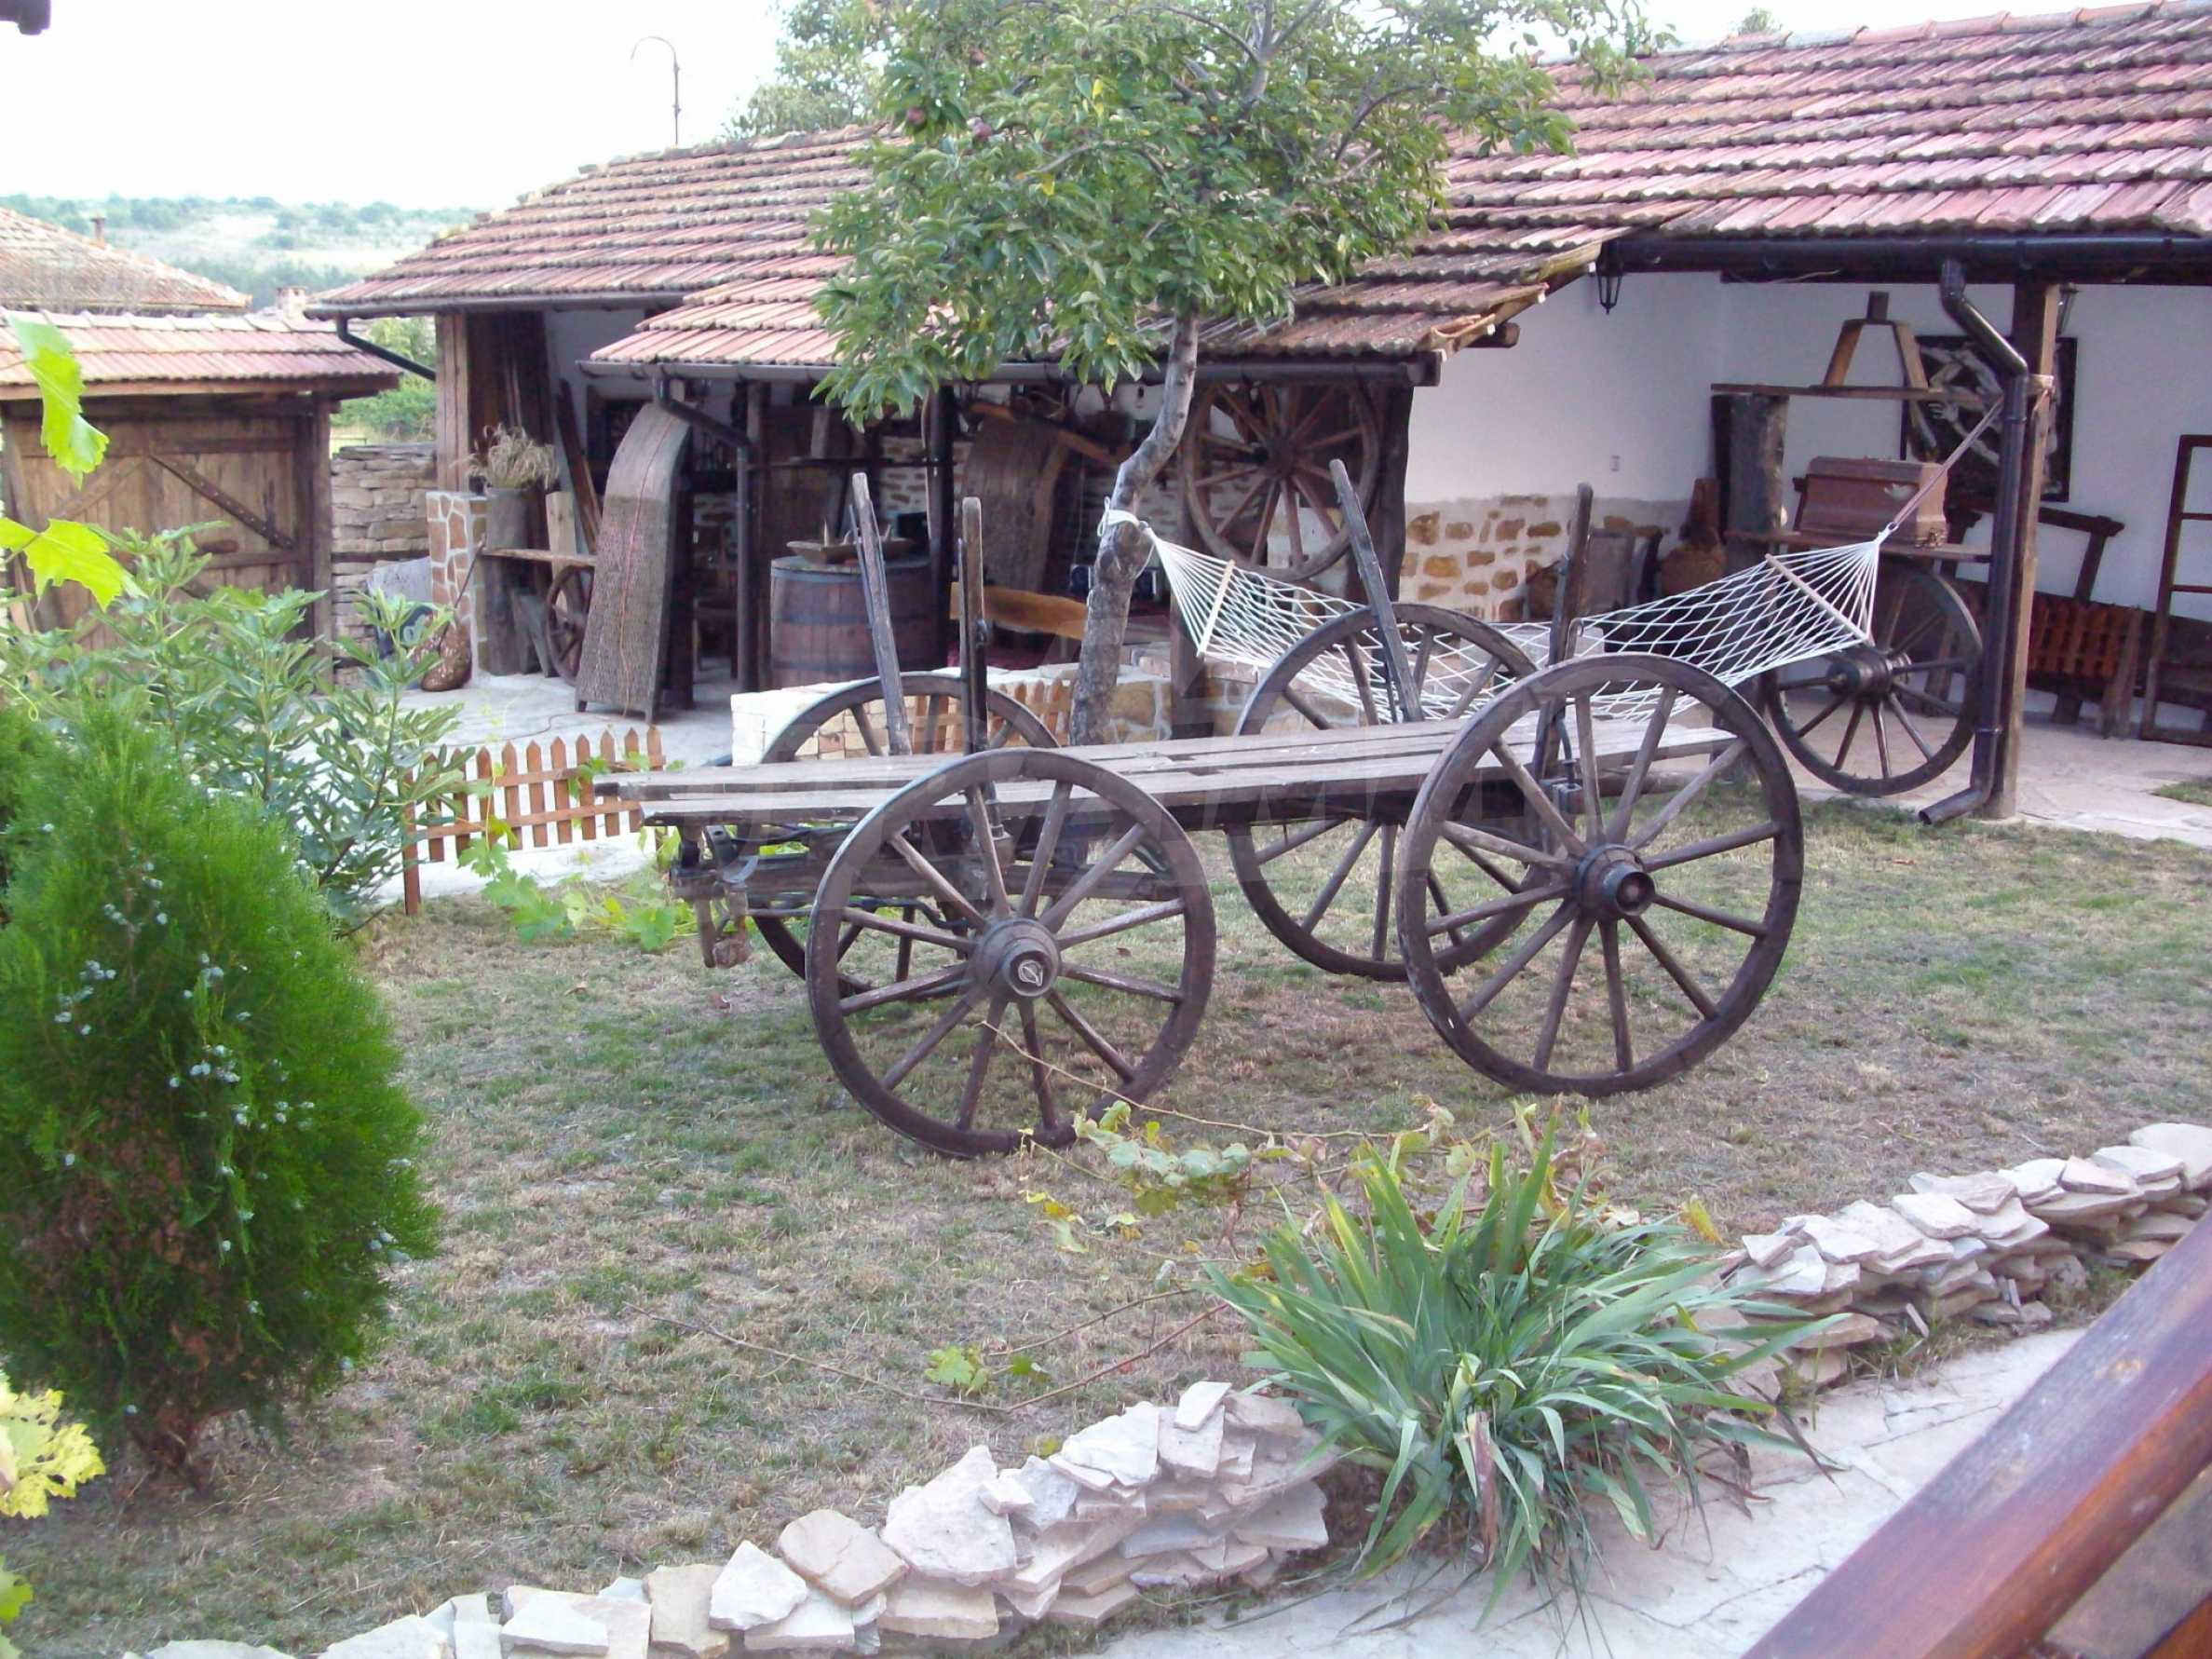 Fully renovated and furnished property in traditional Bulgarian style 25